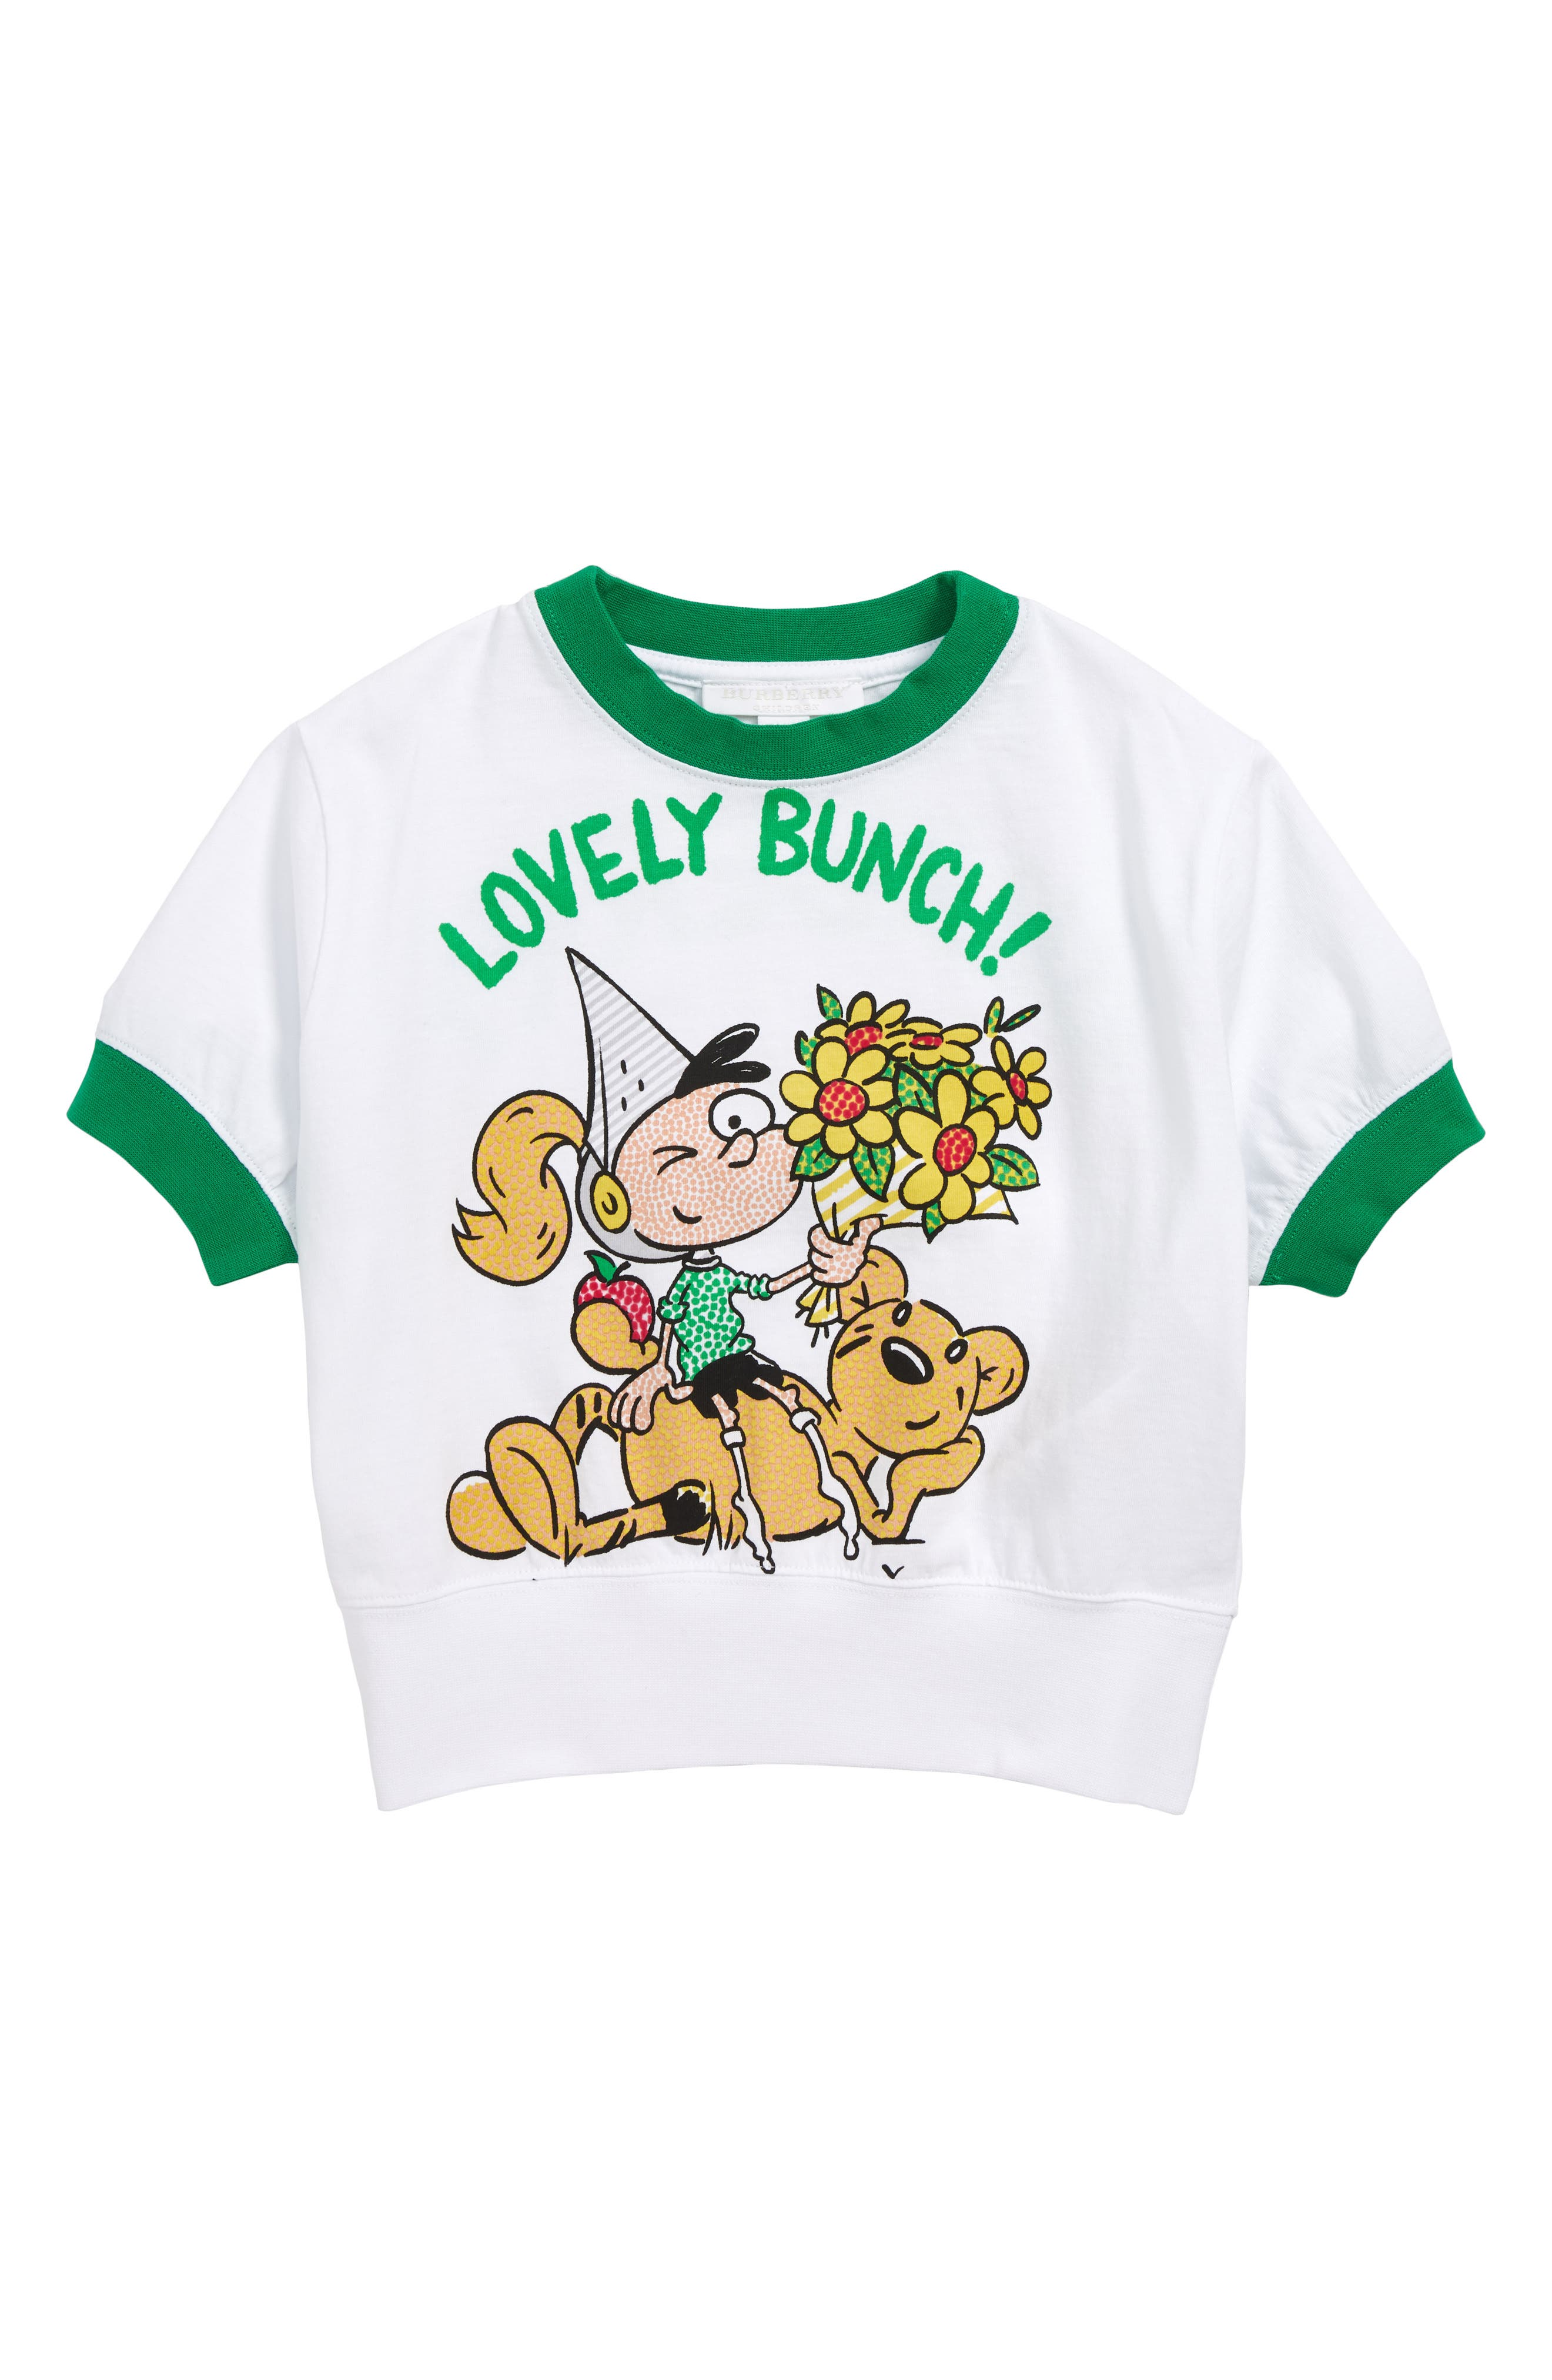 Lovely Bunch T-Shirt,                             Main thumbnail 1, color,                             WHITE